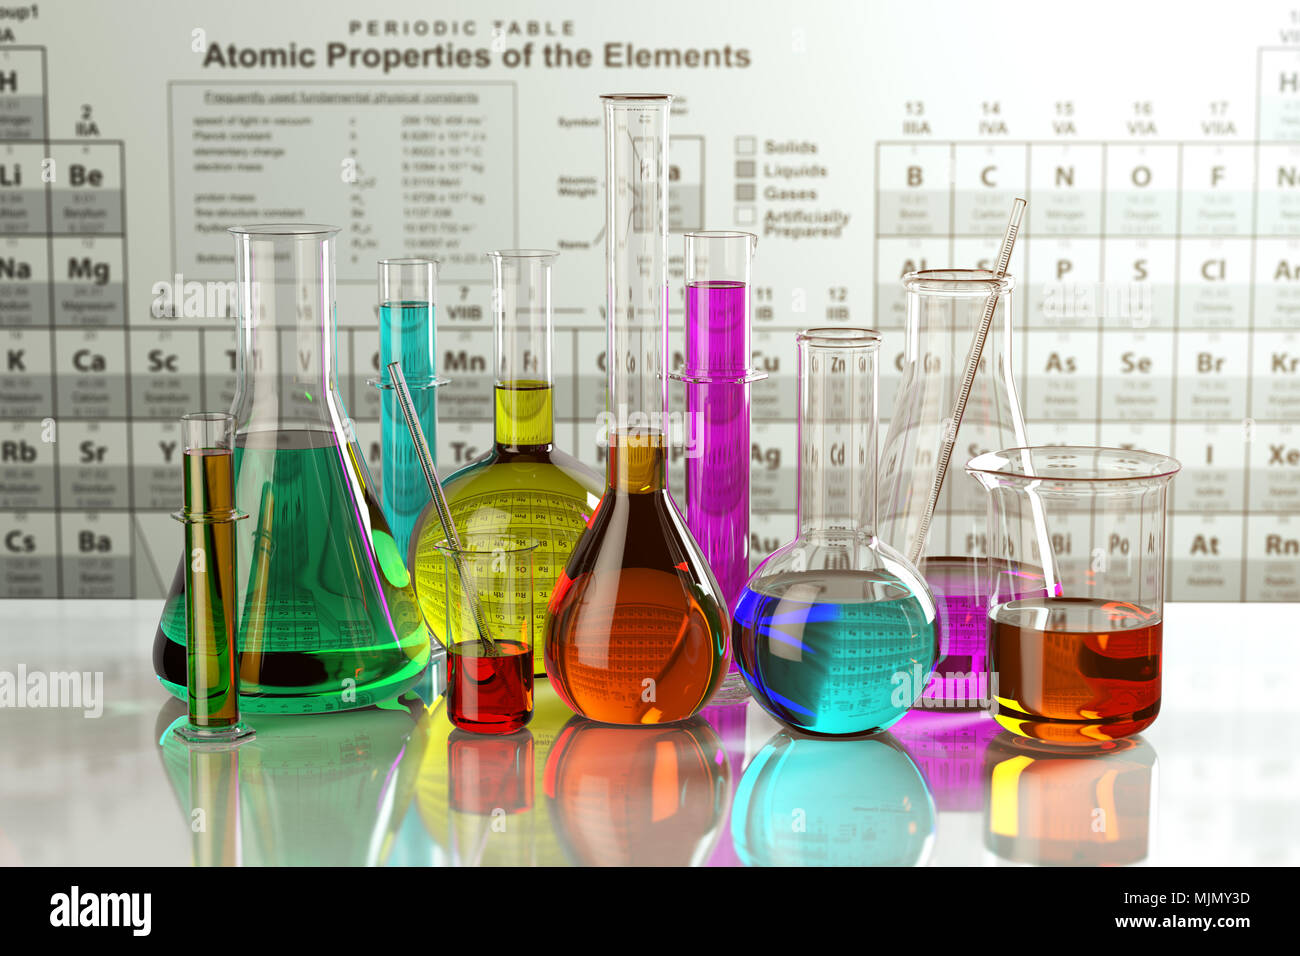 Test glass flasks and tubes with colored solutions on the periodic test glass flasks and tubes with colored solutions on the periodic table of elements laboratory glassware science chemistry and research concept 3d urtaz Images